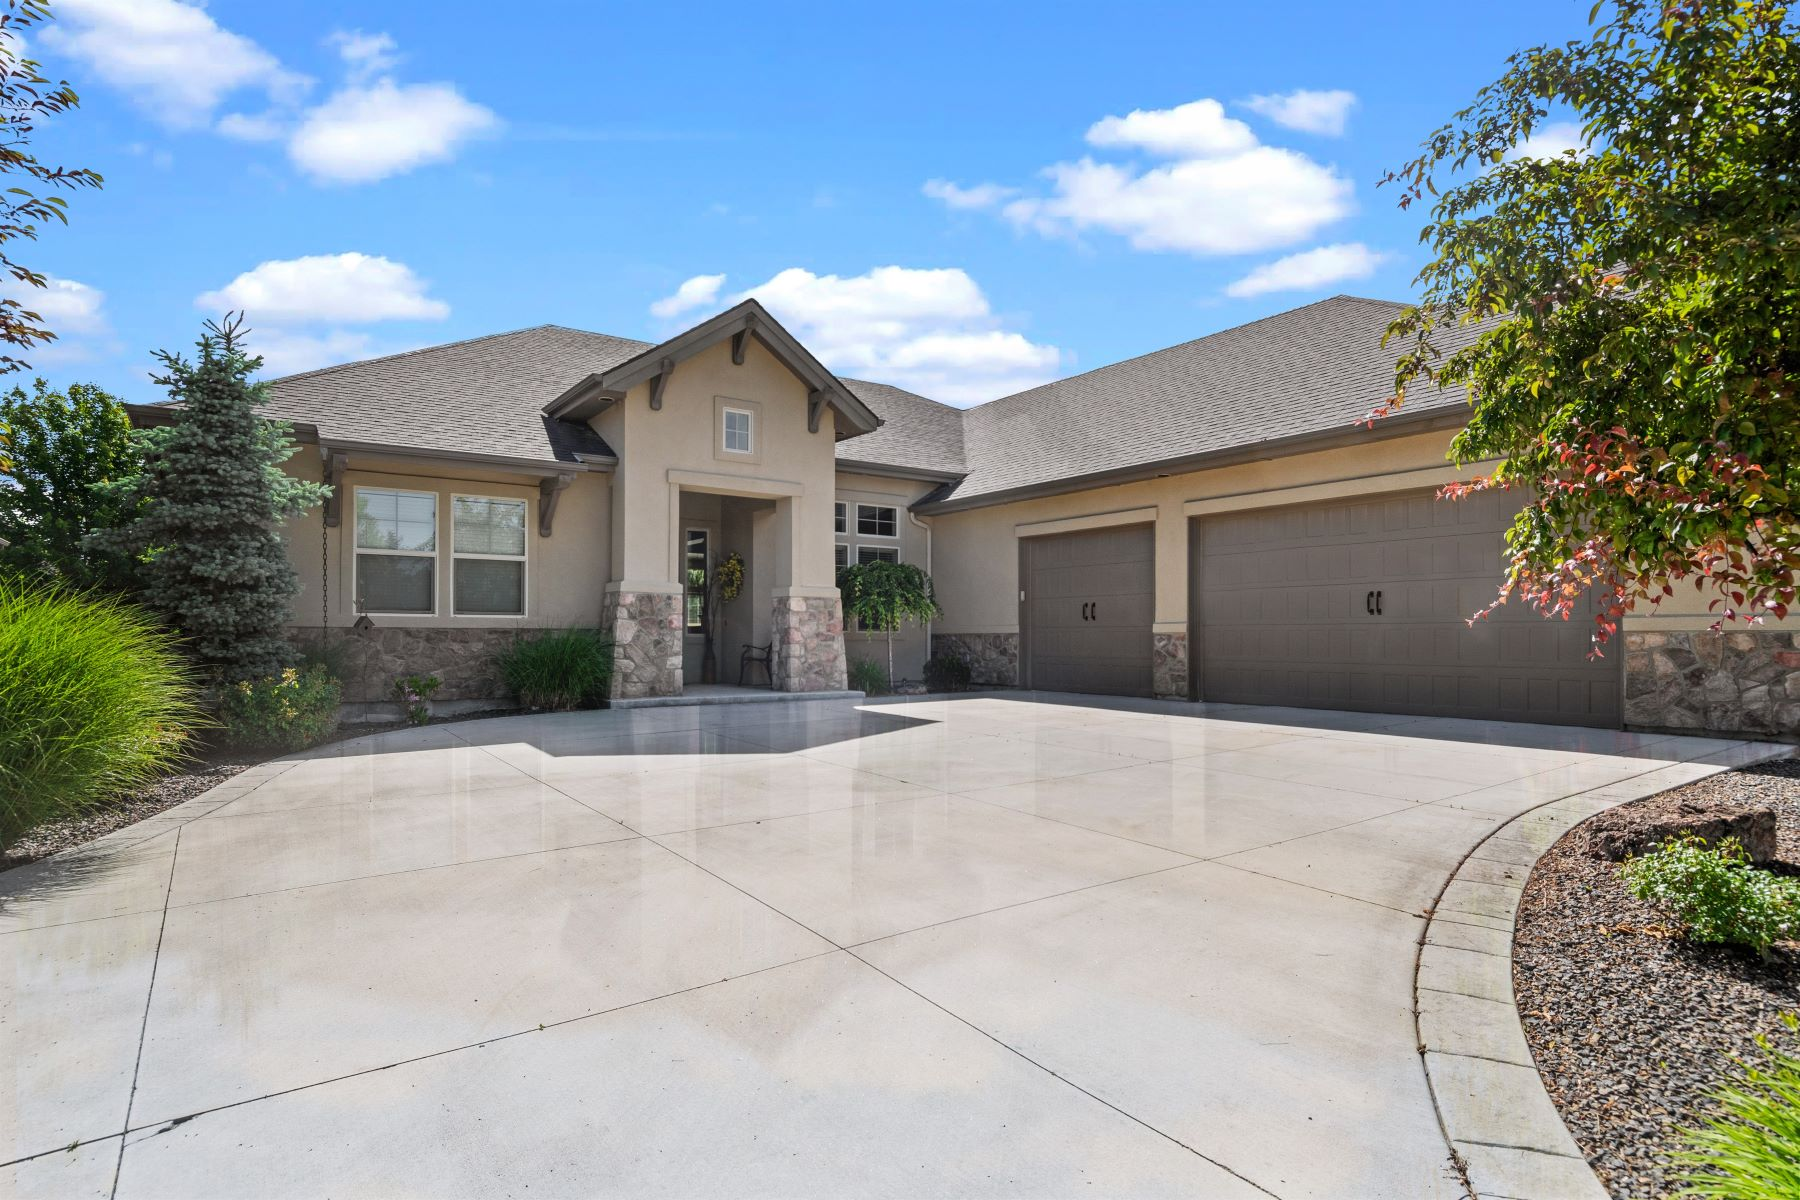 Single Family Homes for Sale at 4159 Greenspire Dr., Meridian 4159 W Greenspire Dr Meridian, Idaho 83646 United States